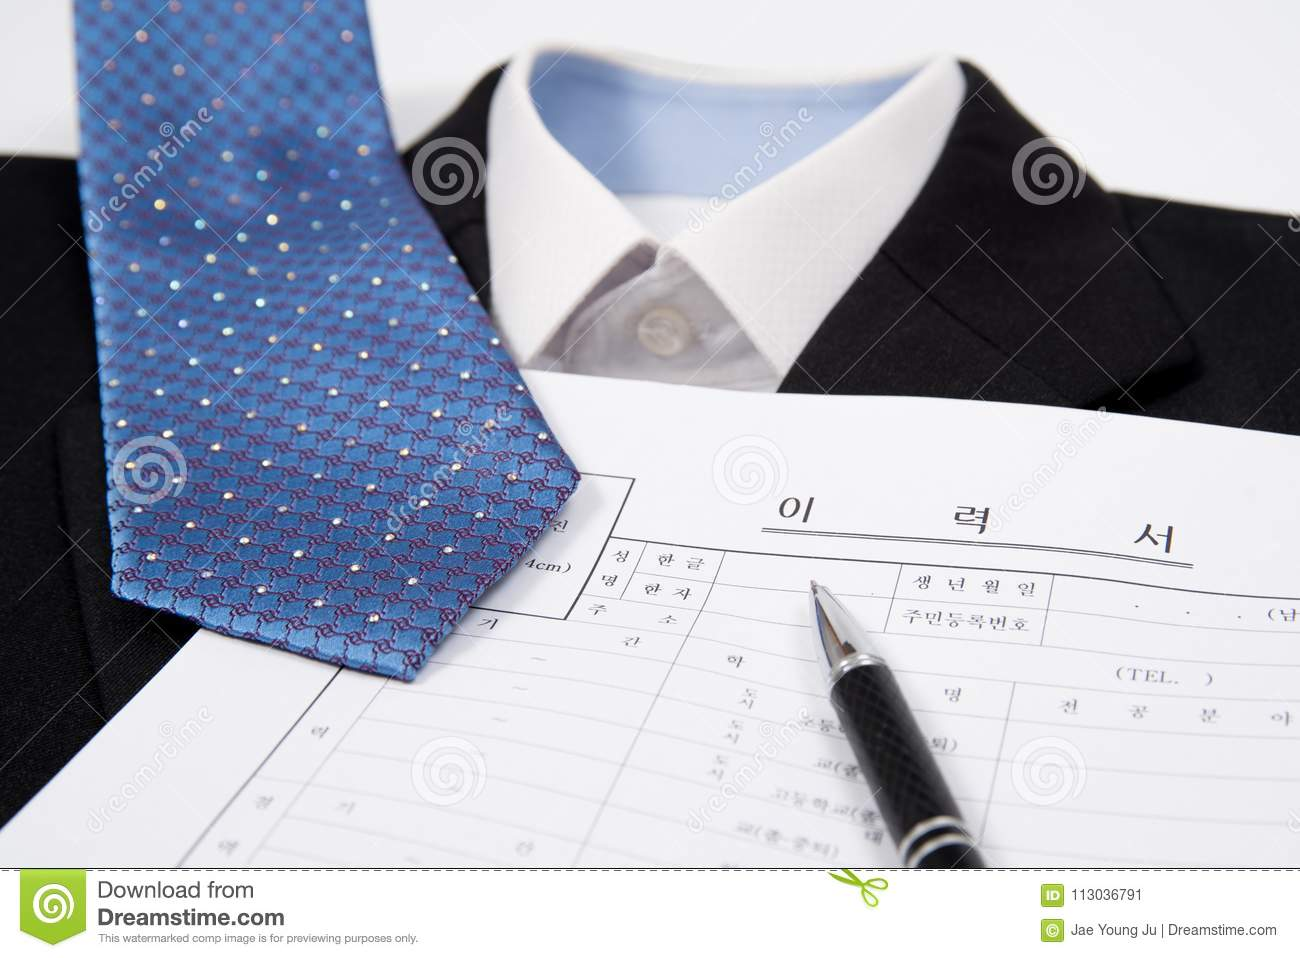 Korean Resume A Close Up Of The Korean Resume Business Concept Stock Image